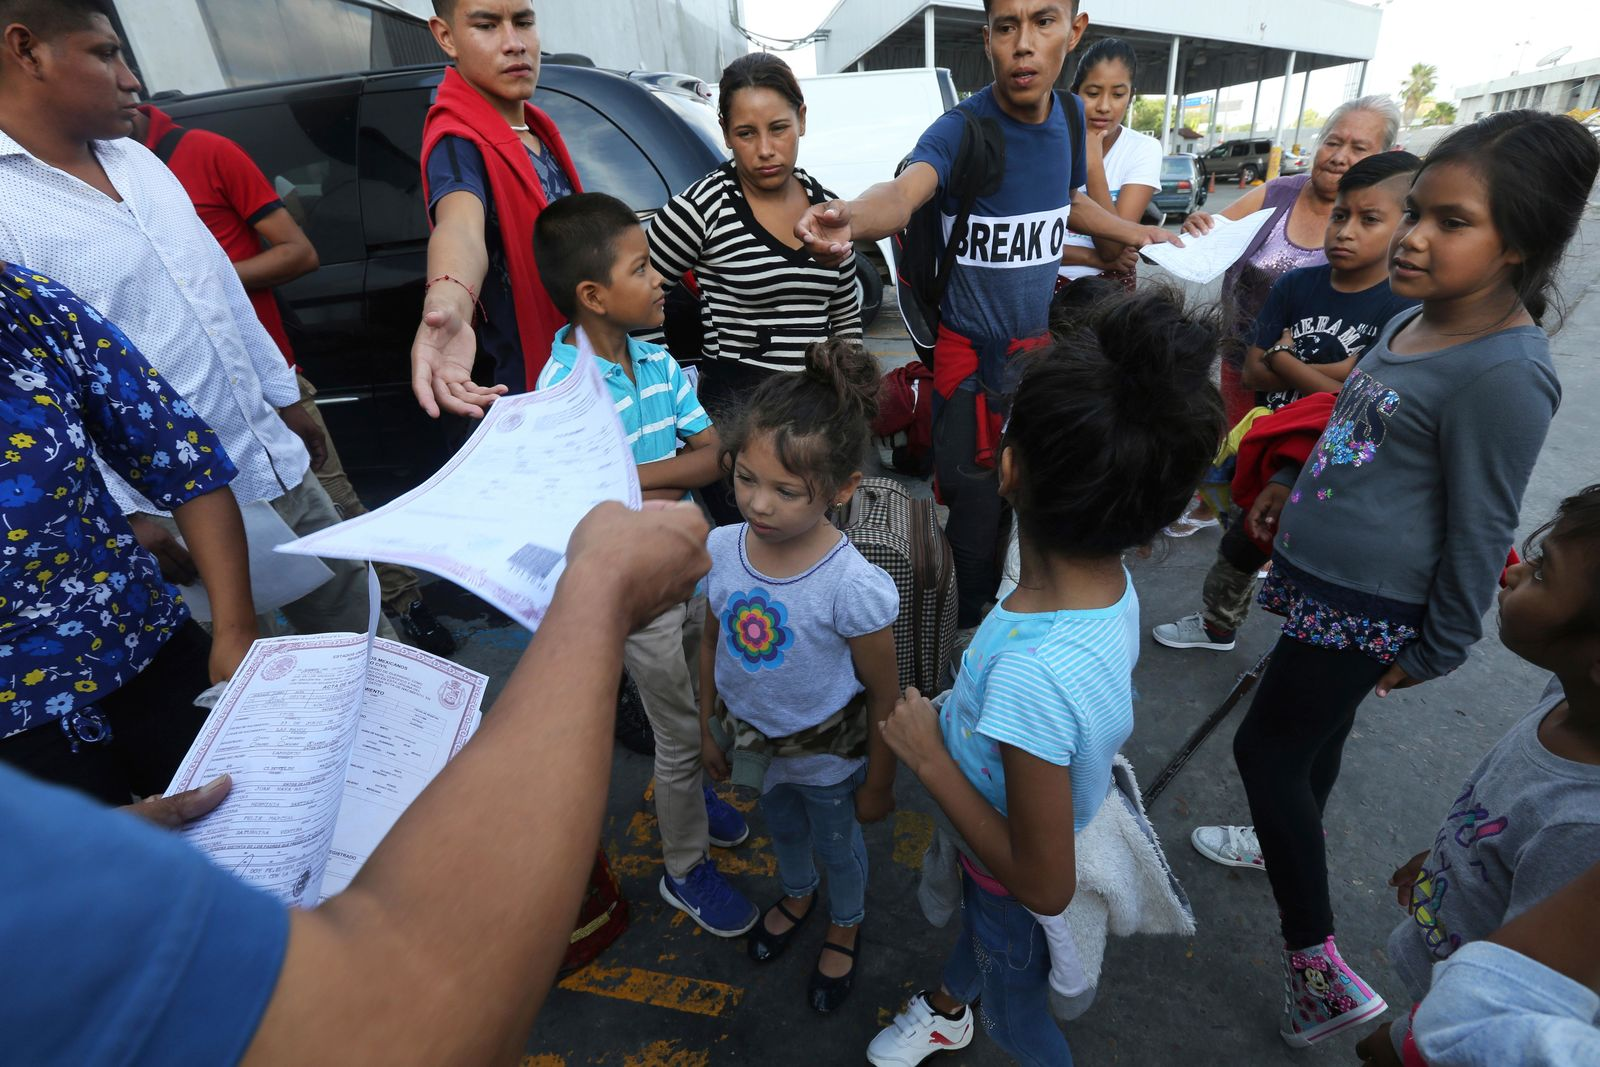 Pastor Aaron Mendes hands out documents to Migrants before they enter the immigration office on the Mexican side of the border, before they are escorted across to apply for asylum on the United States side, in Nuevo Laredo, Mexico, Wednesday, July 17, 2019. Asylum-seekers grappled to understand what a new U.S. policy that all but eliminates refugee claims by Central Americans and many others meant for their bids to find a better life in America amid a chaos of rumors, confusion and fear. (AP Photo/Marco Ugarte)